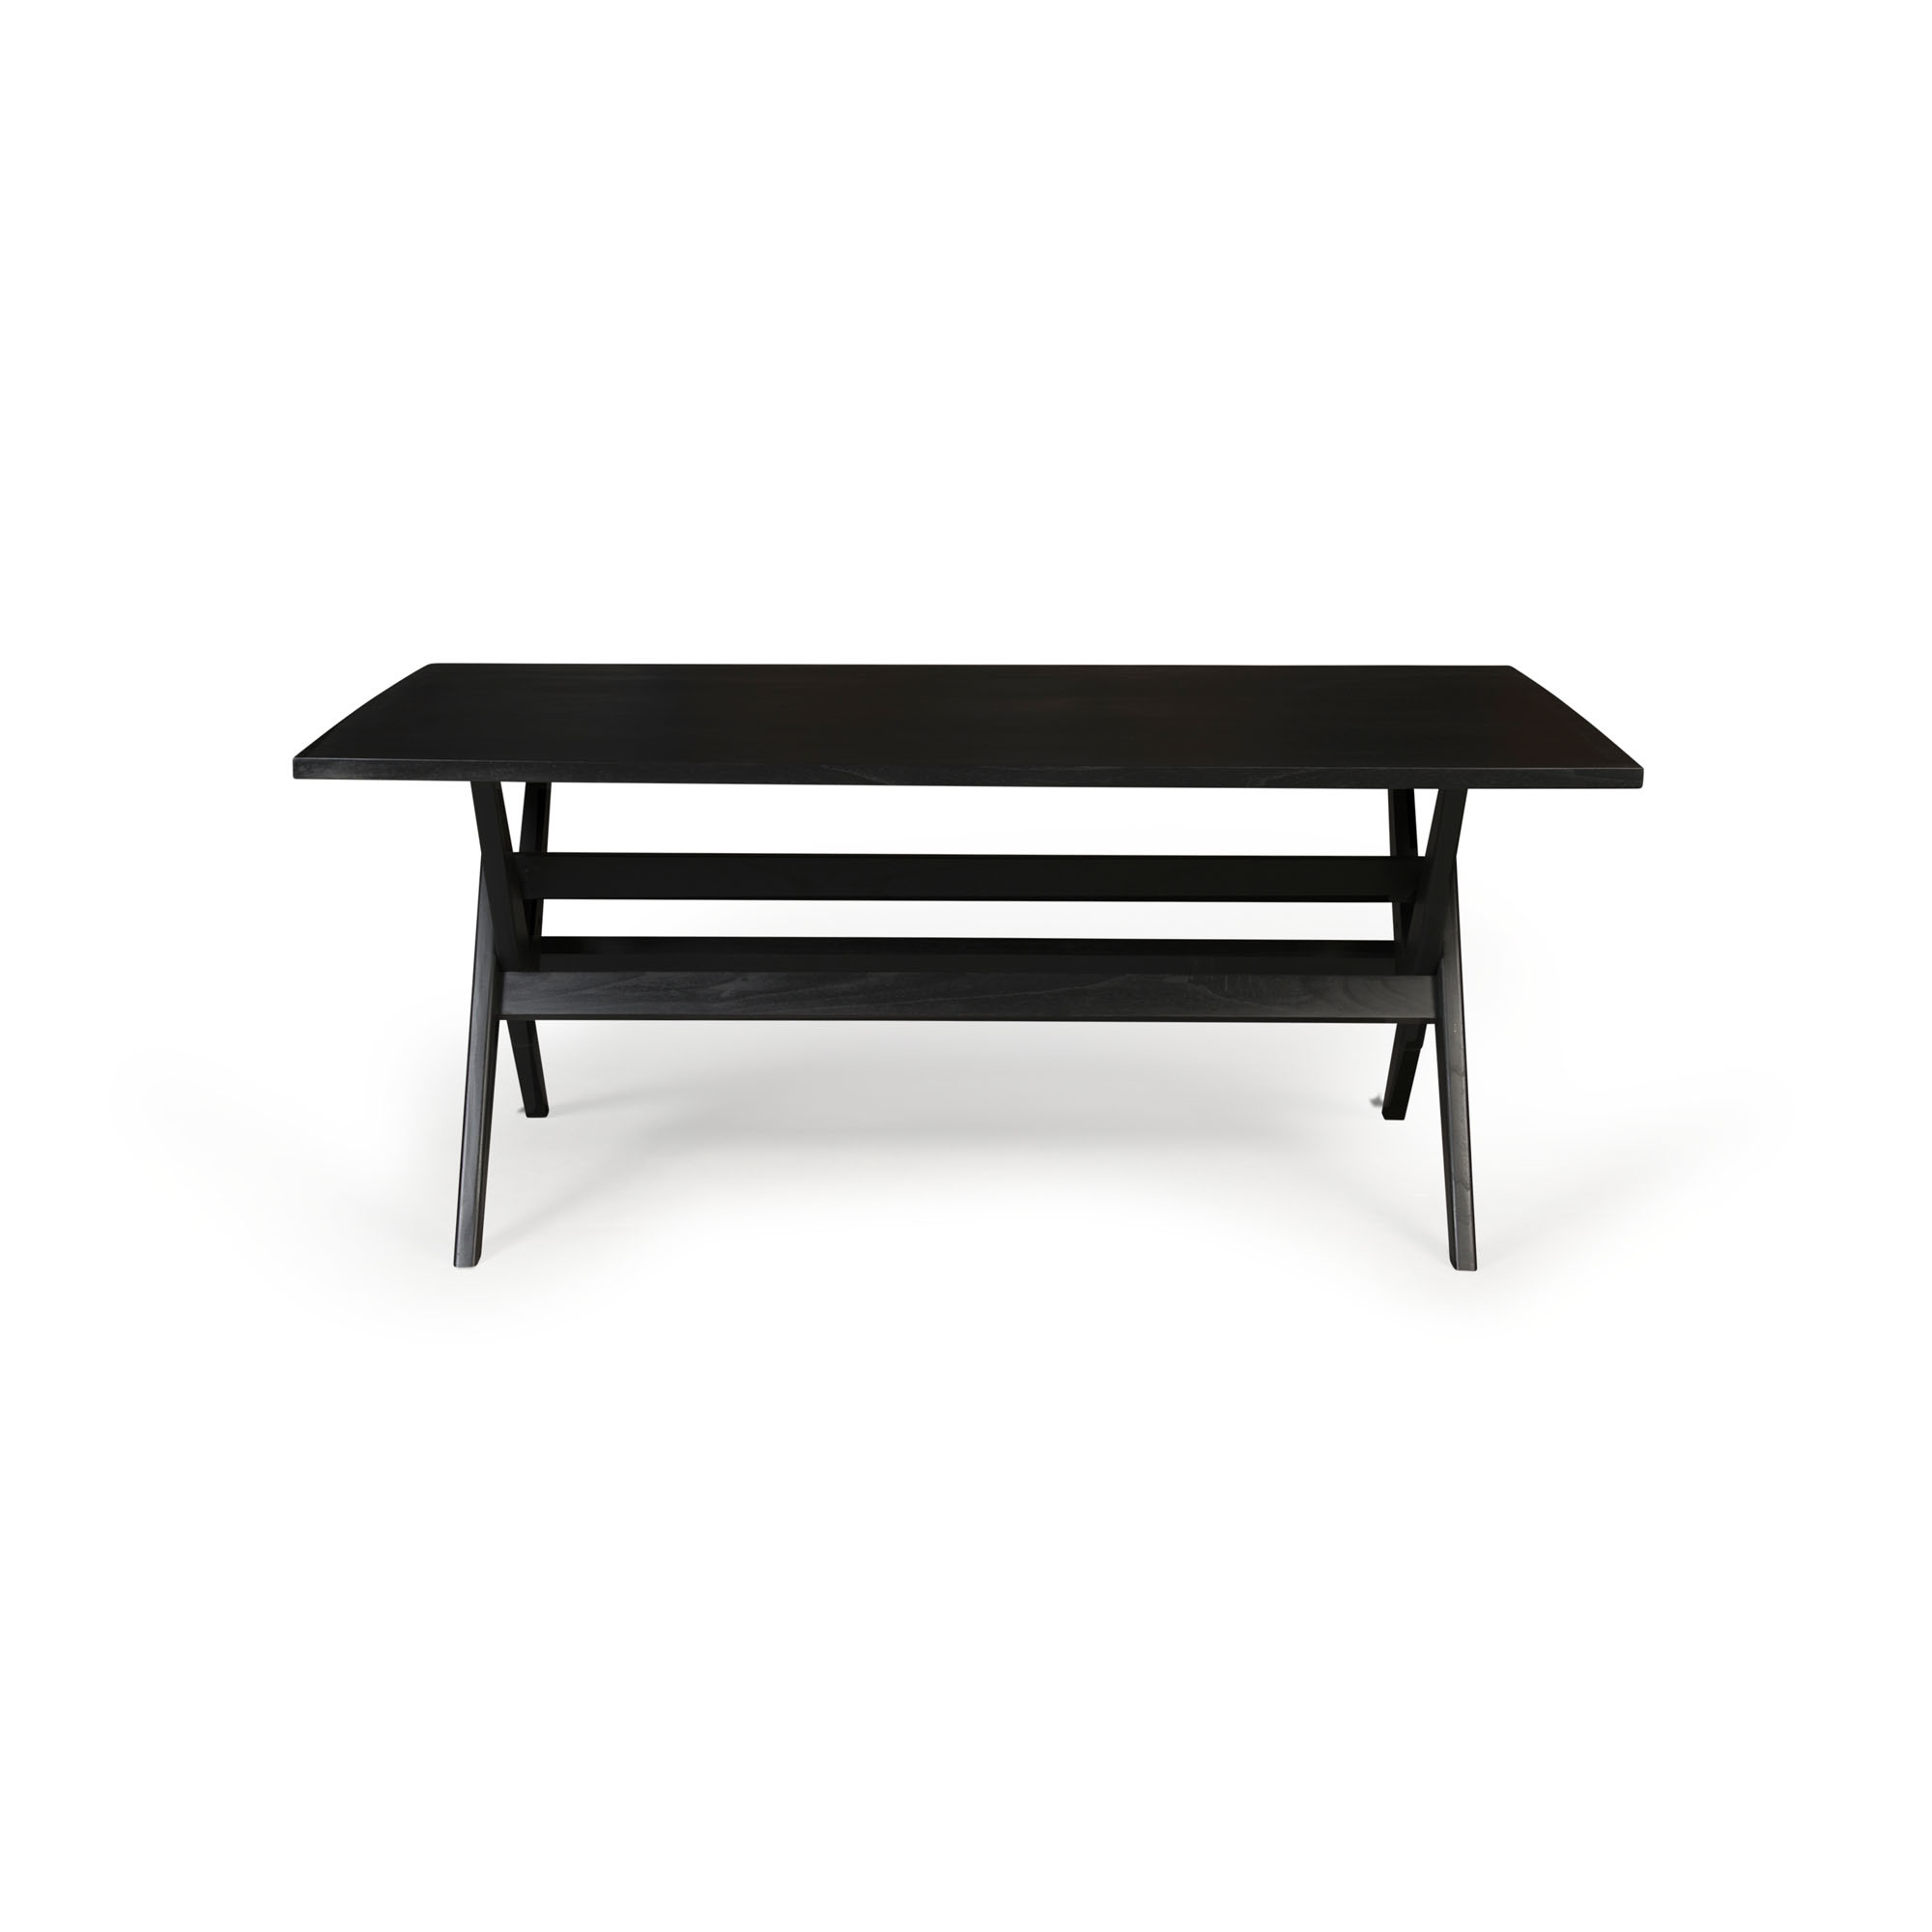 Dining Table W.T.H. 180 -  Charcoal Black-3